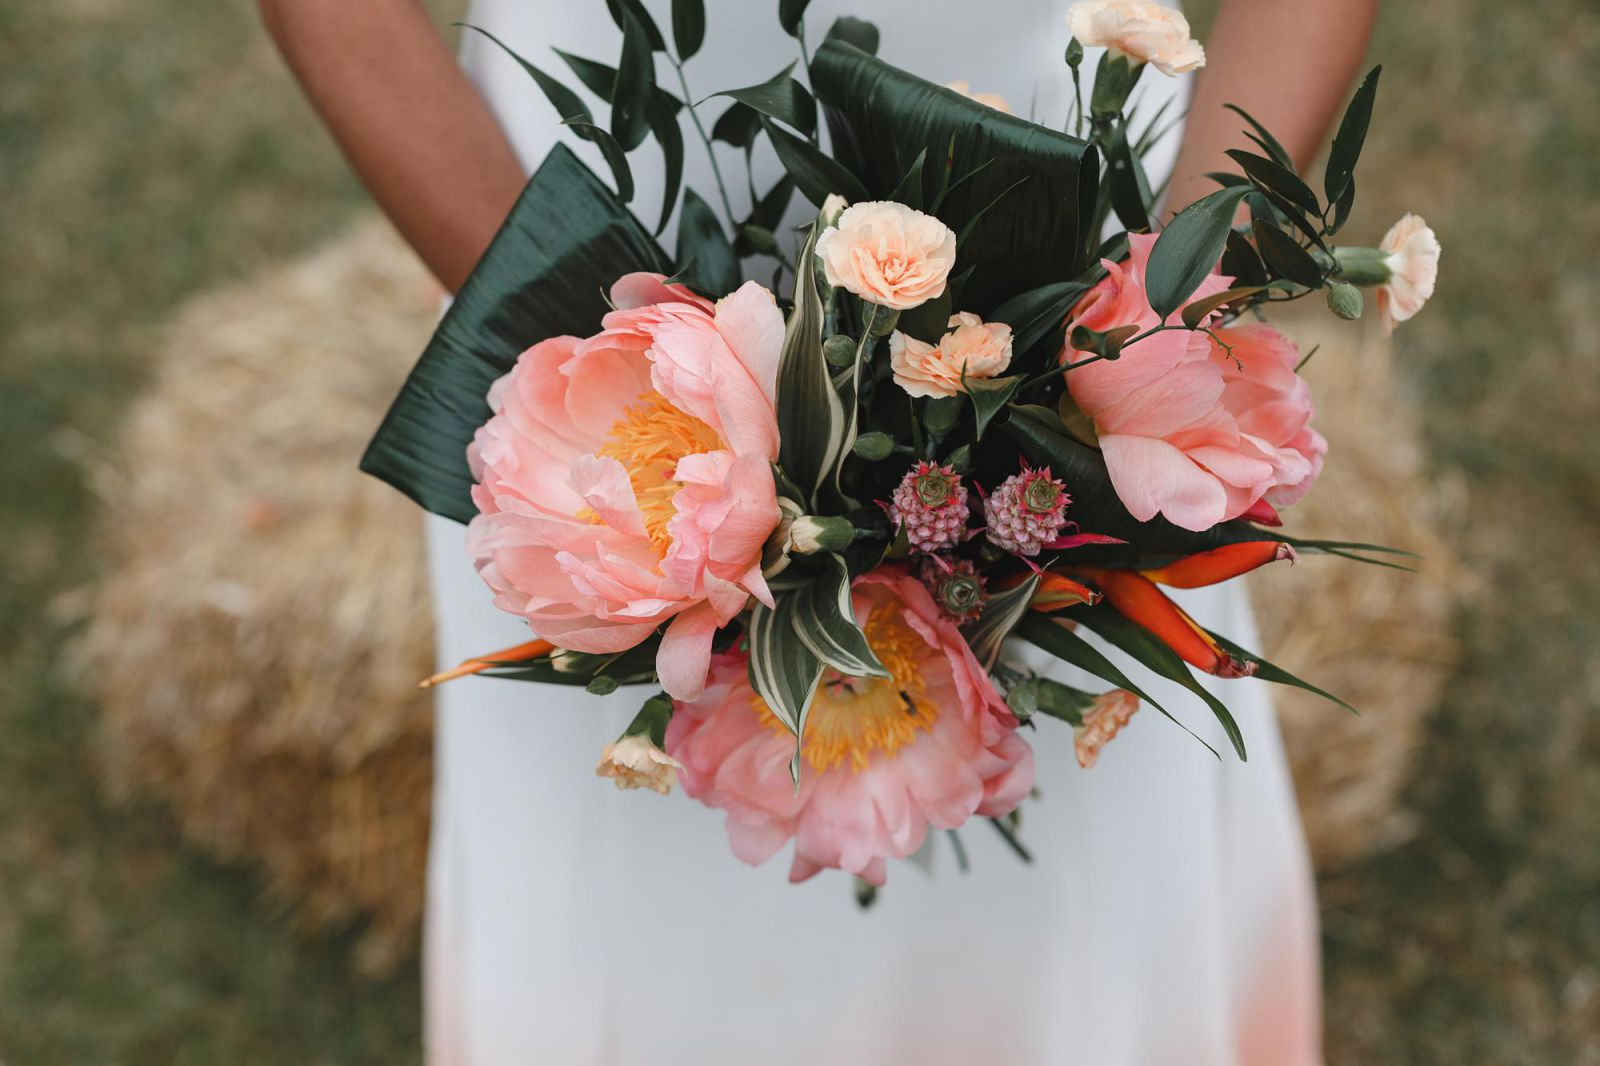 Hannah Green Photography A Young Bride Holds A Colourful Peach Bouquet At Stock Street Farm Barn Wedding Venue In Essex, UK